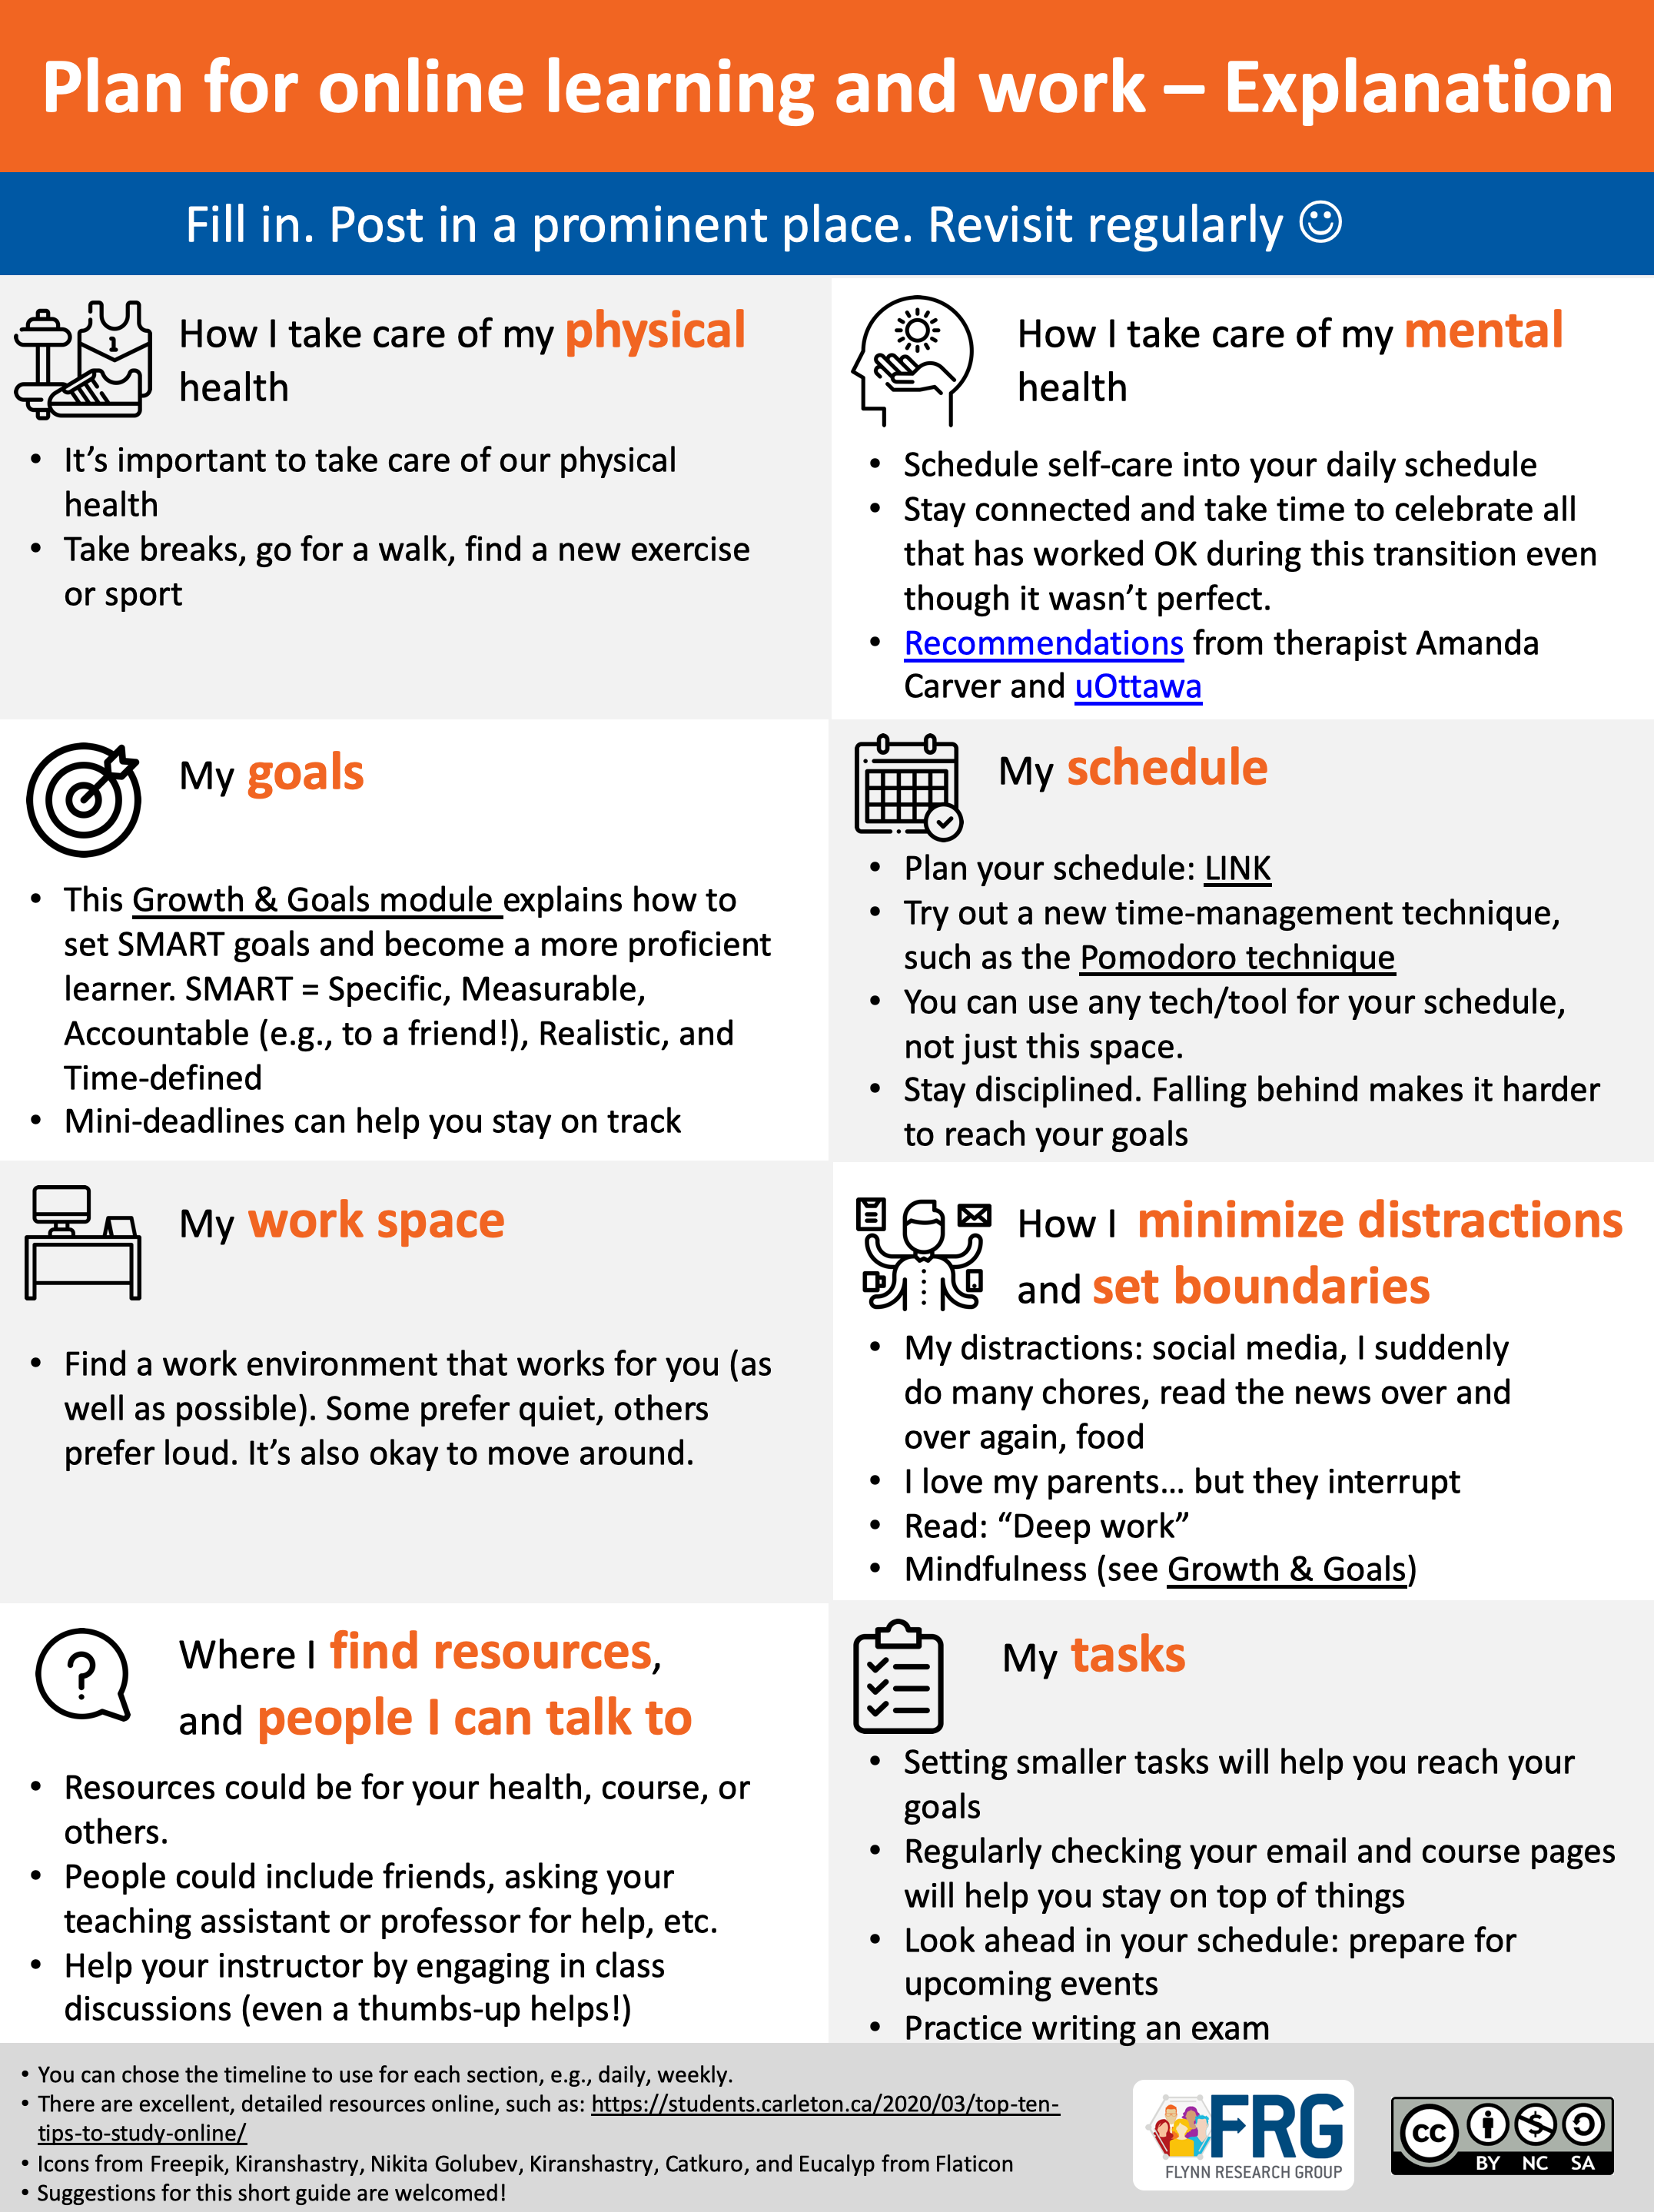 Plan for online learning and work - explanation